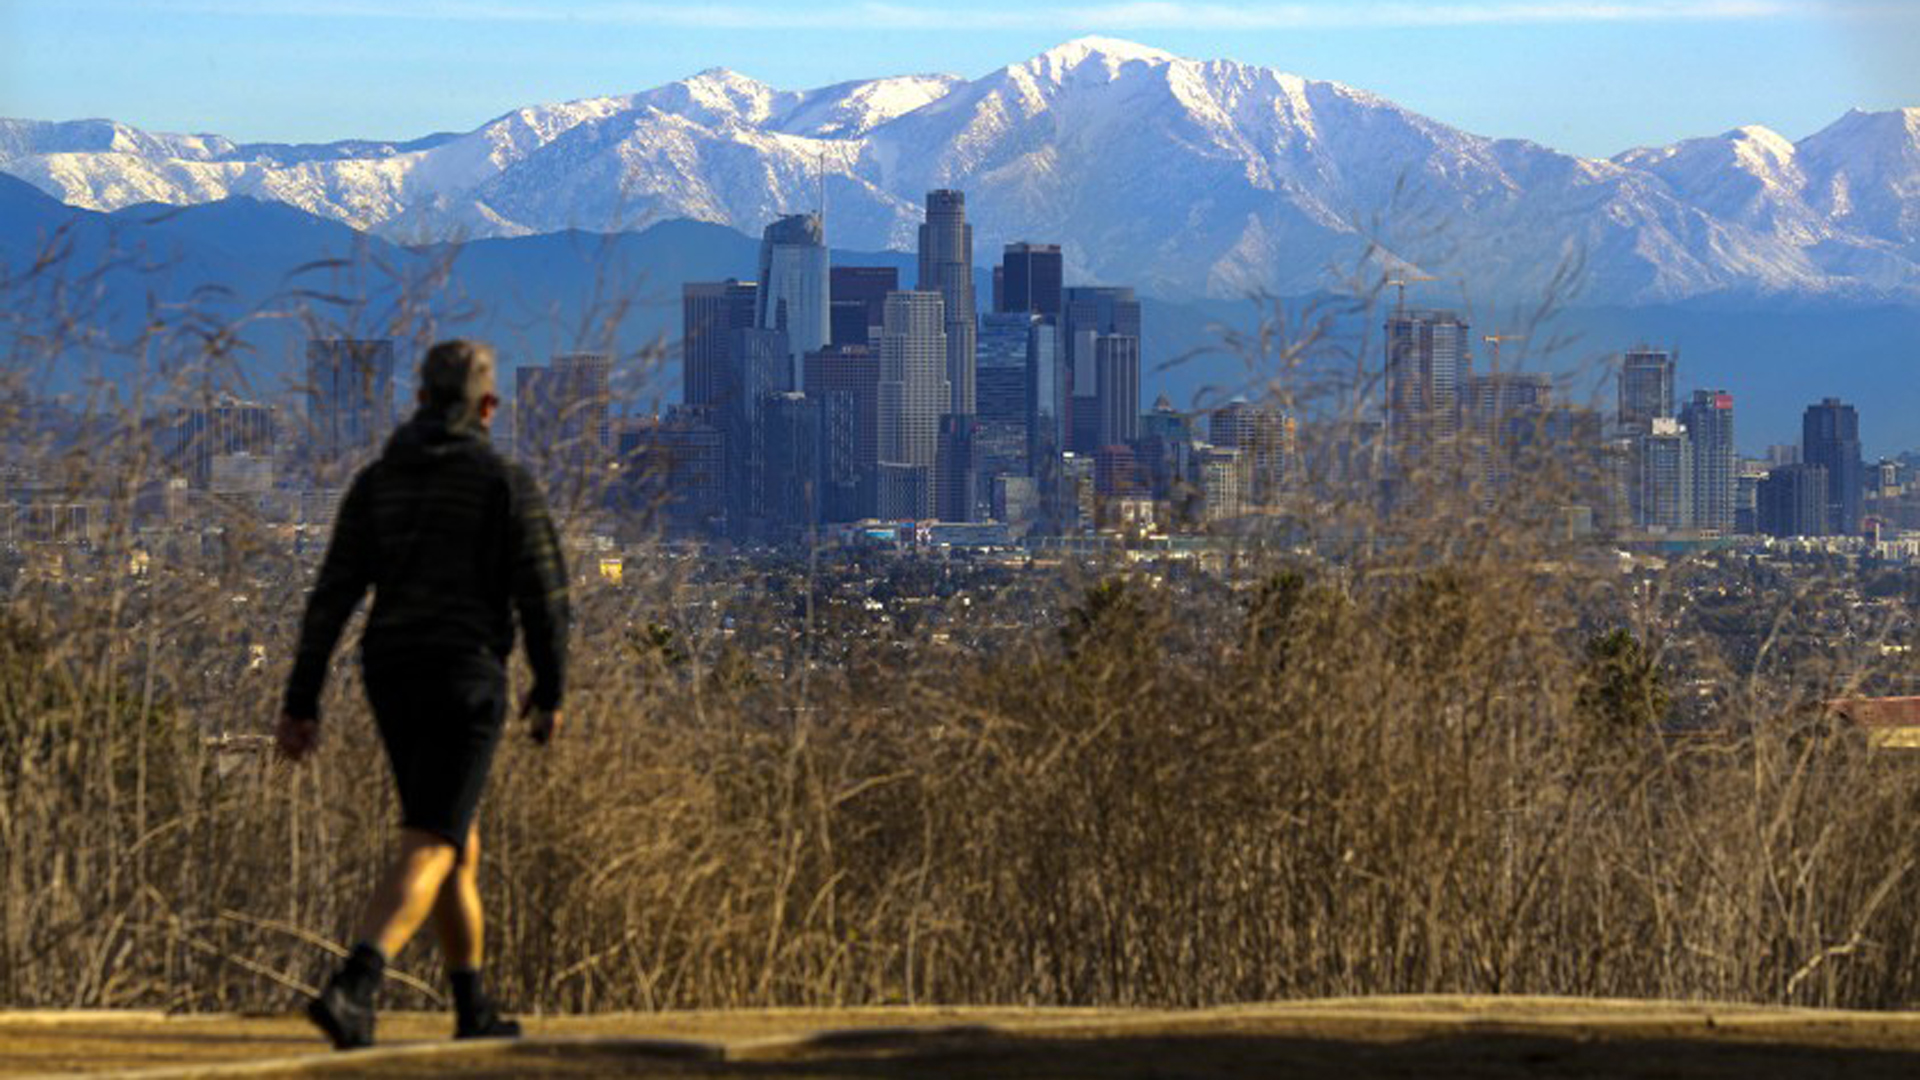 The downtown L.A. skyline and snowy mountains are seen from Kenneth Hahn State Recreation Area on Nov. 30, 2019. (Credit: Irfan Khan / Los Angeles Times)